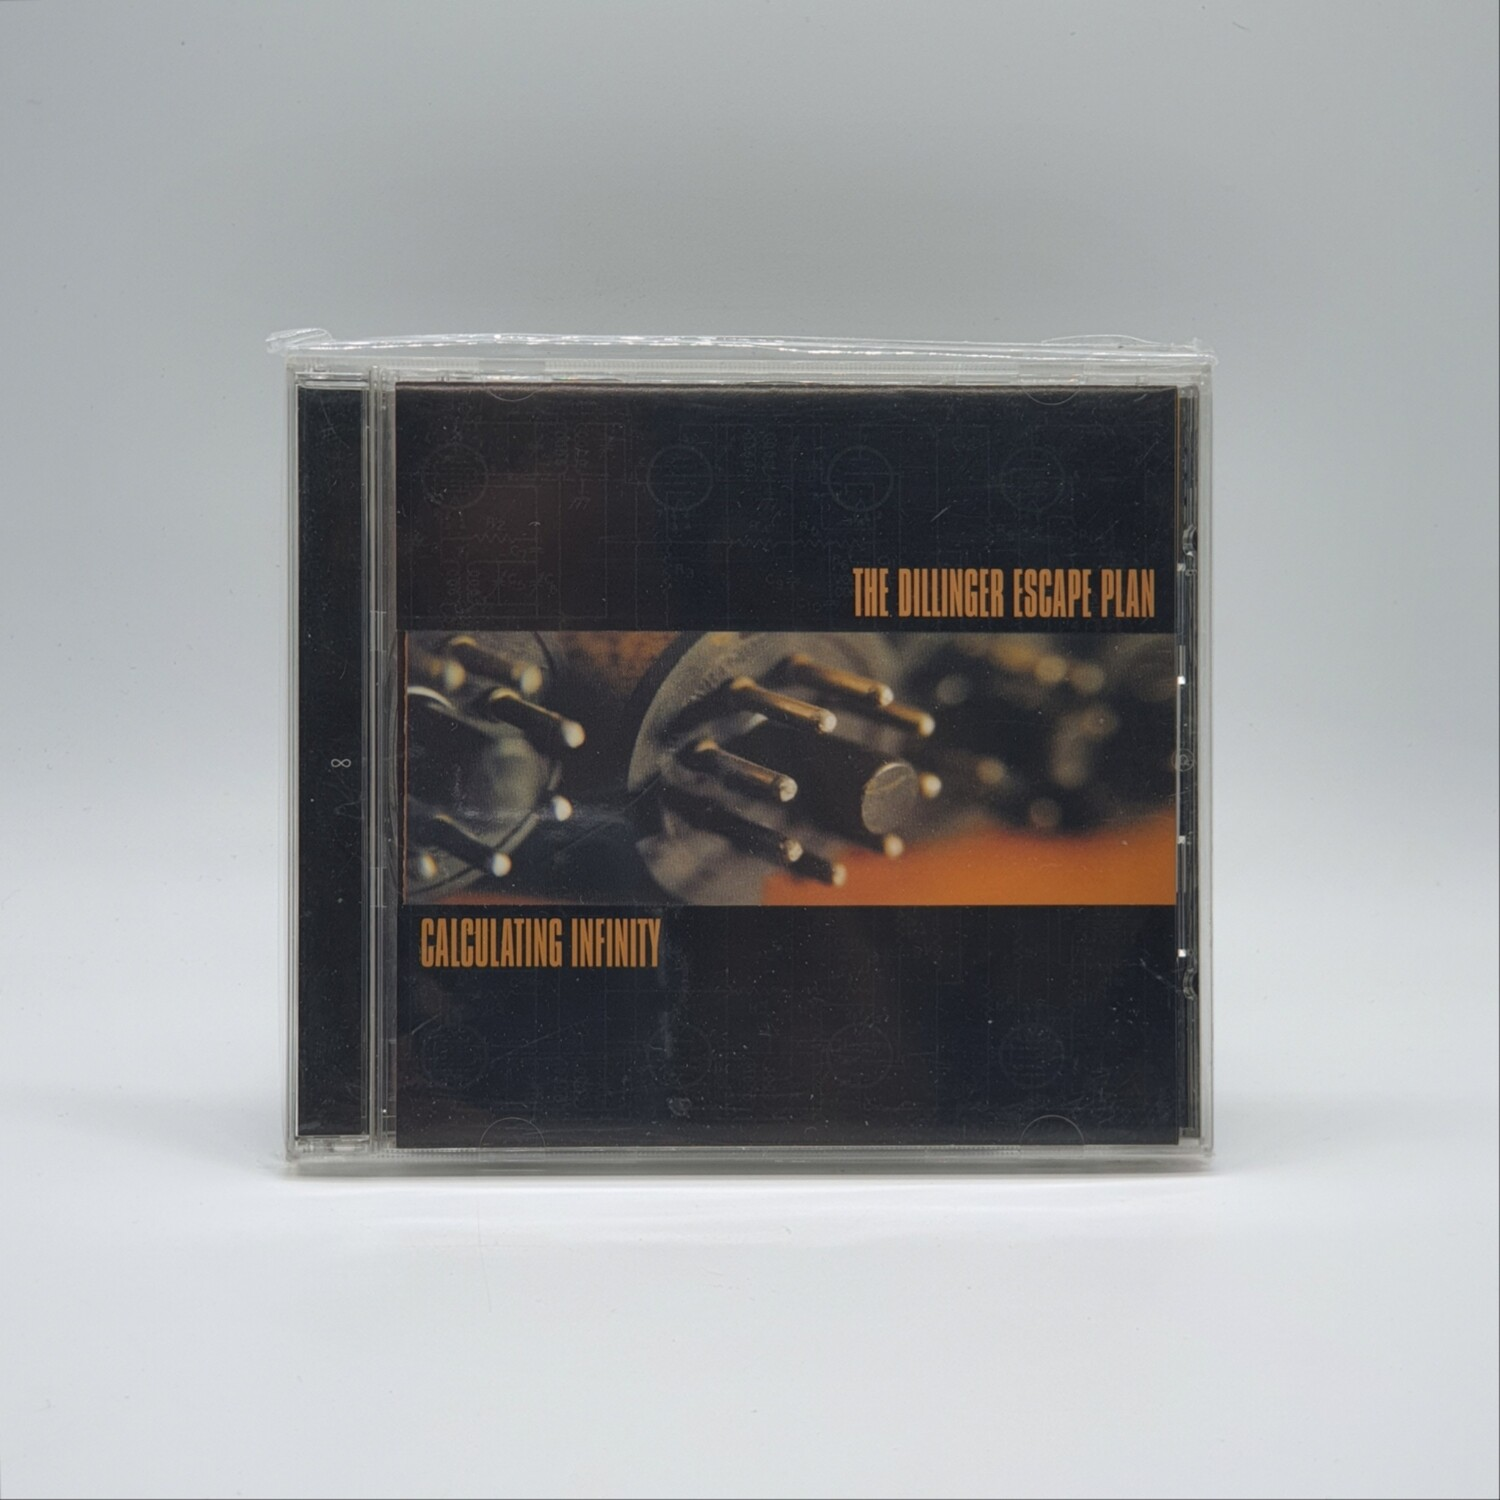 THE DILLINGER ESCAPE PLAN -CALCULATING INFINITY- CD